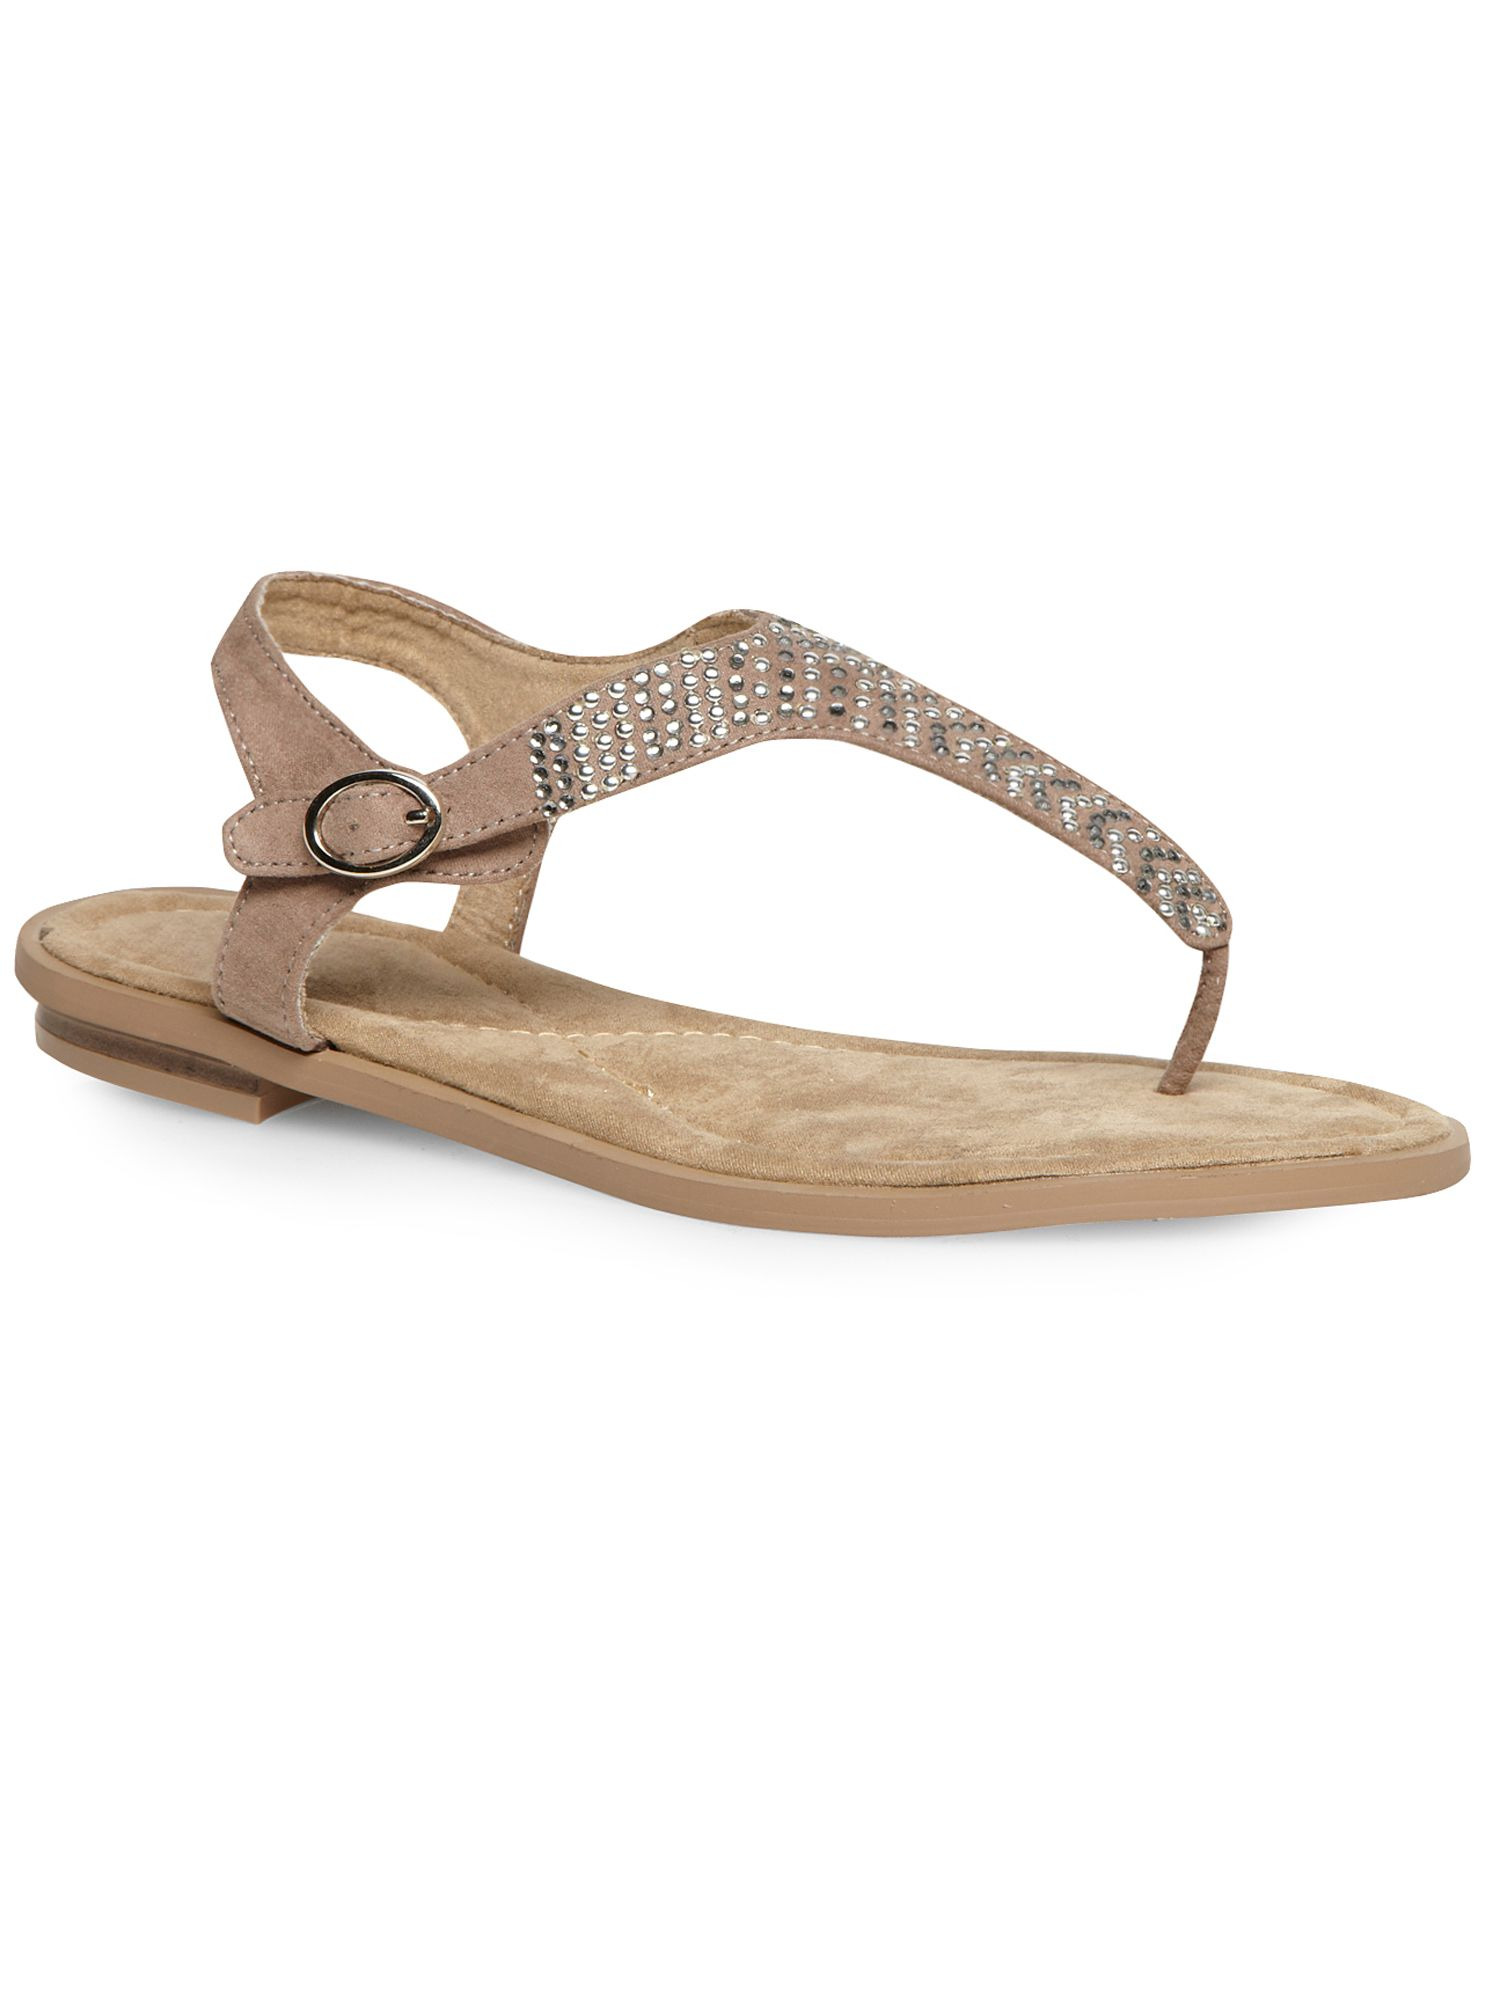 Mink embellished toe post sandal